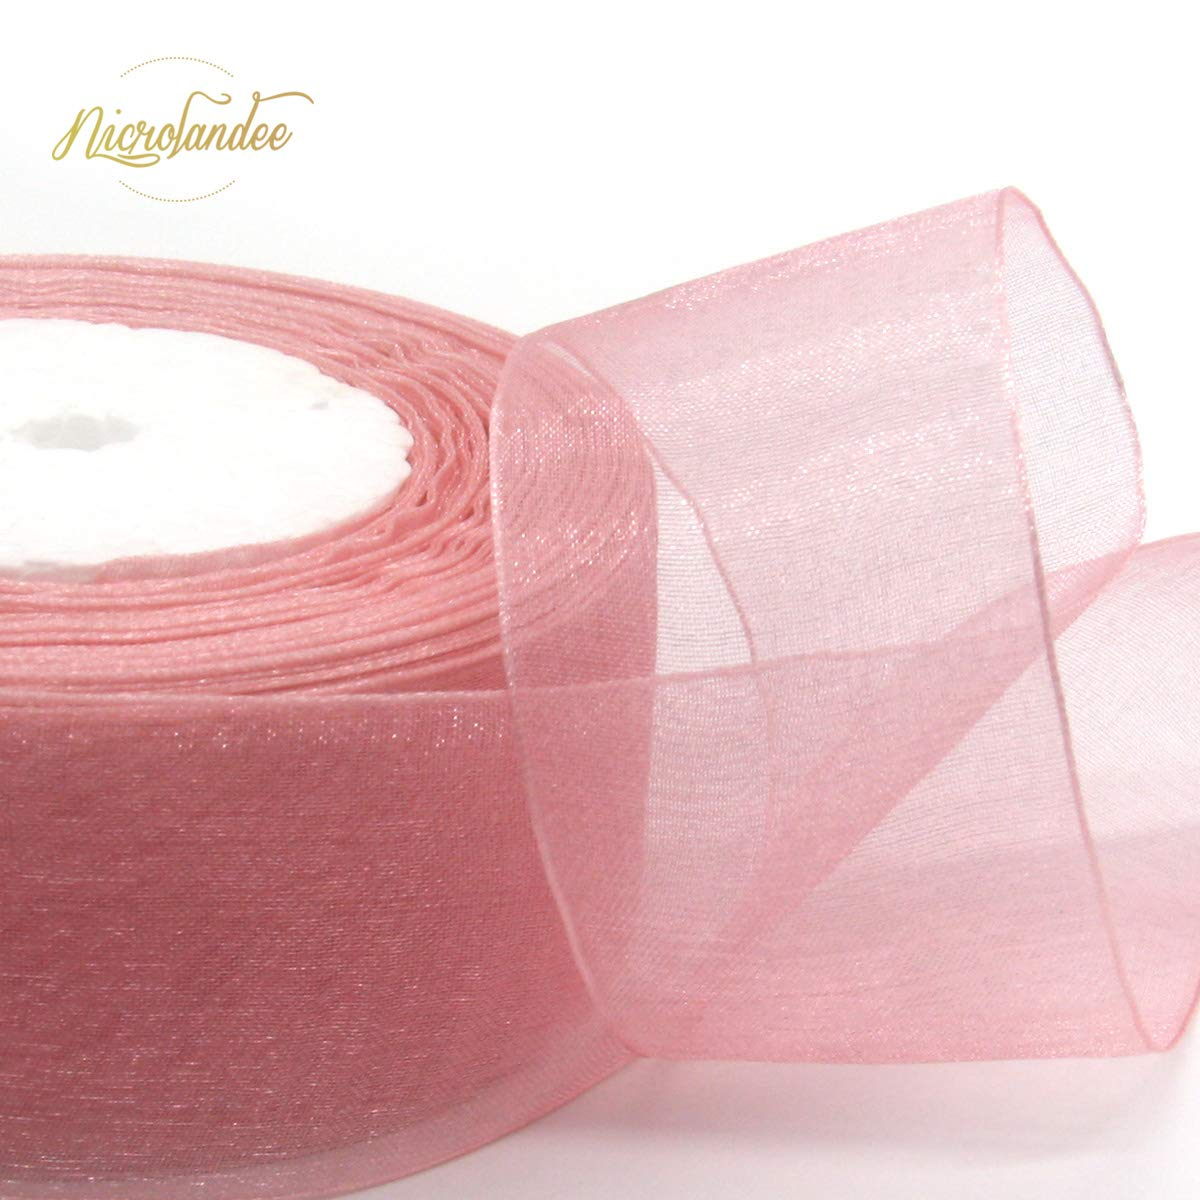 NICROLANDEE 3pcs Sheer Chiffon Ribbon 1.5Inch×49 Yards Dusty Rose Fading Ribbon Set for Wedding Gift Package Valentines Bouquets Wrapping Birthday Baby Shower Home Decor Wreath Decorations Fabric by NICROLANDEE (Image #4)